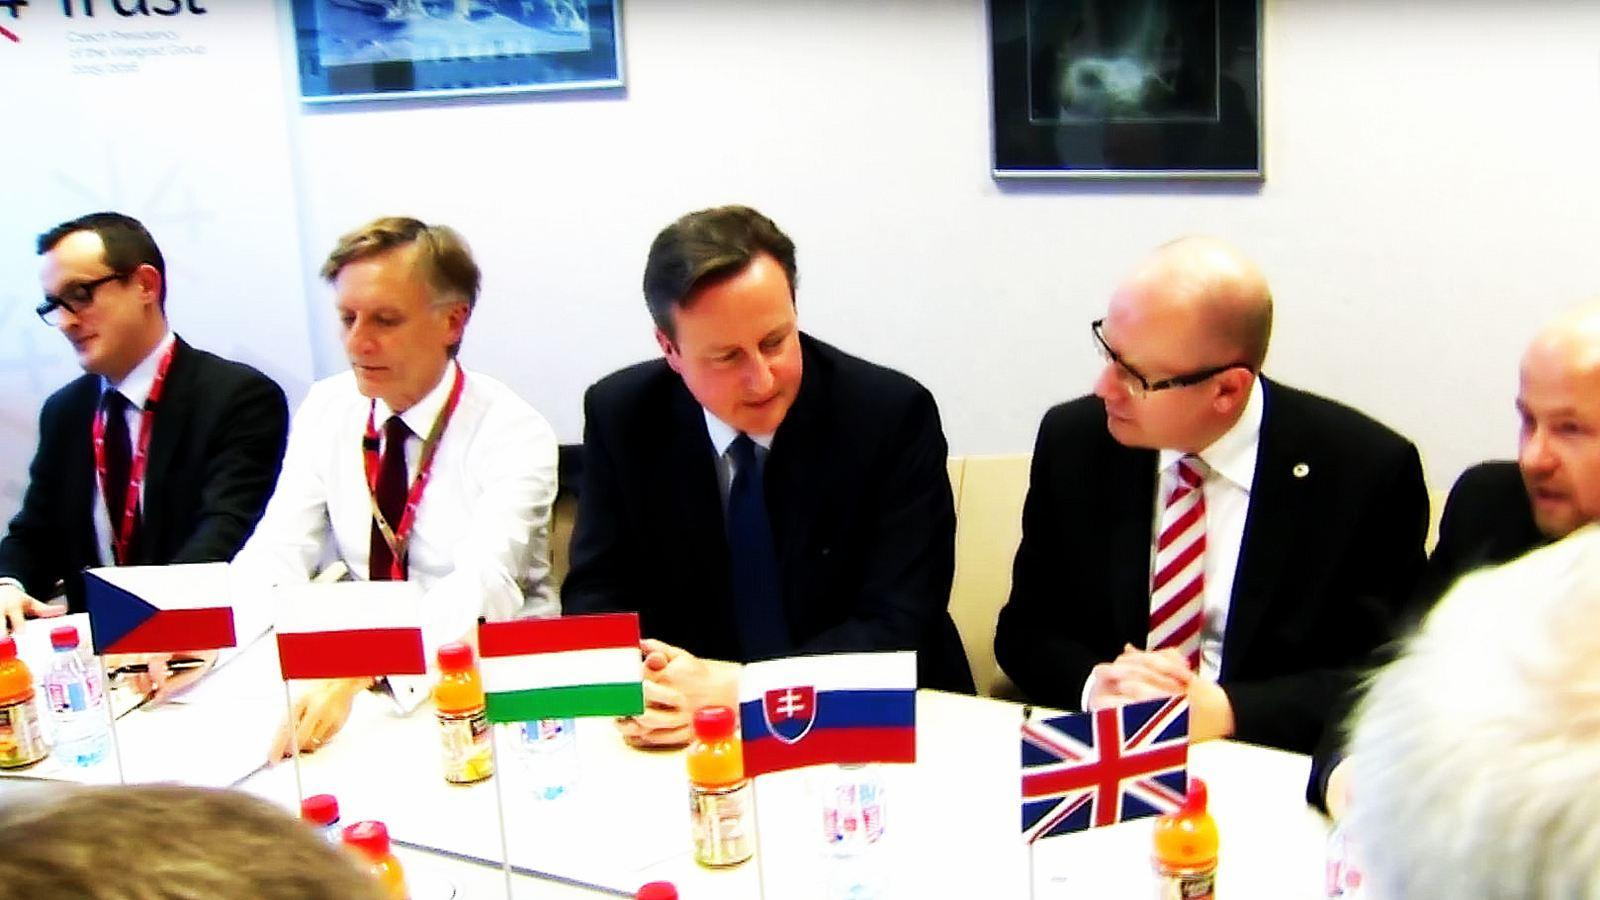 Teaser image NOW! video - After UK: Who's next curbing social benefits?